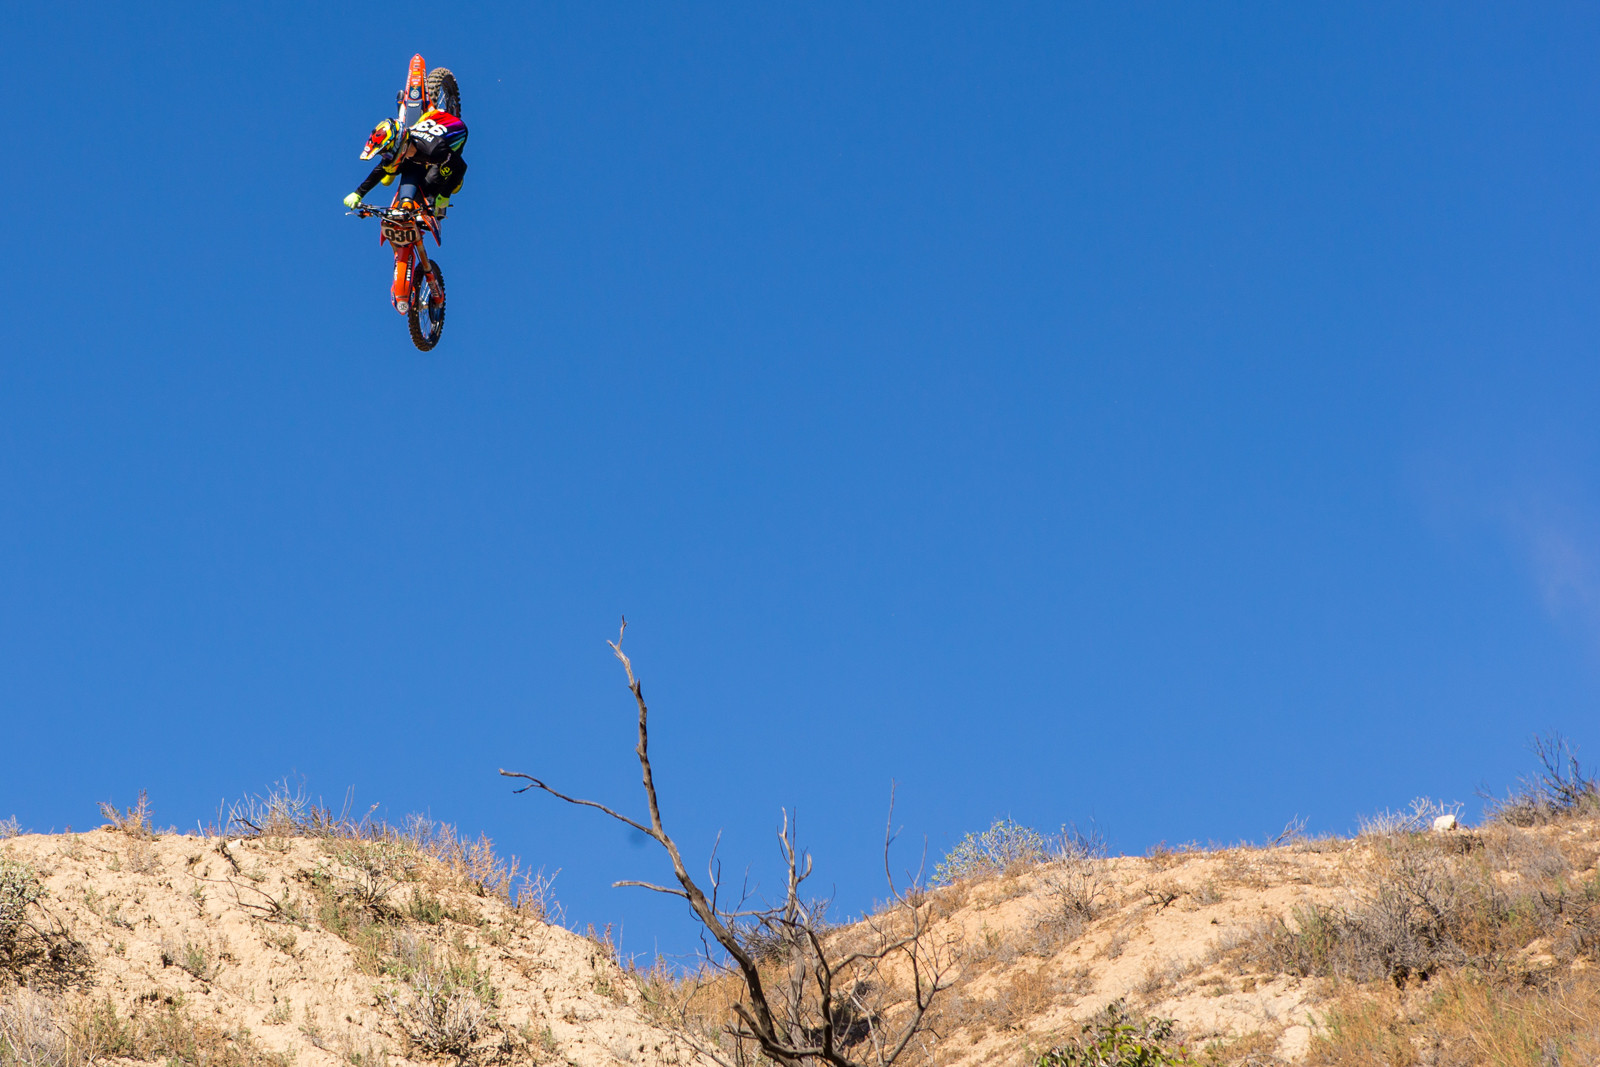 Tom Parsons - Rain in SoCal - To the Hills of Beaumont - Motocross Pictures - Vital MX